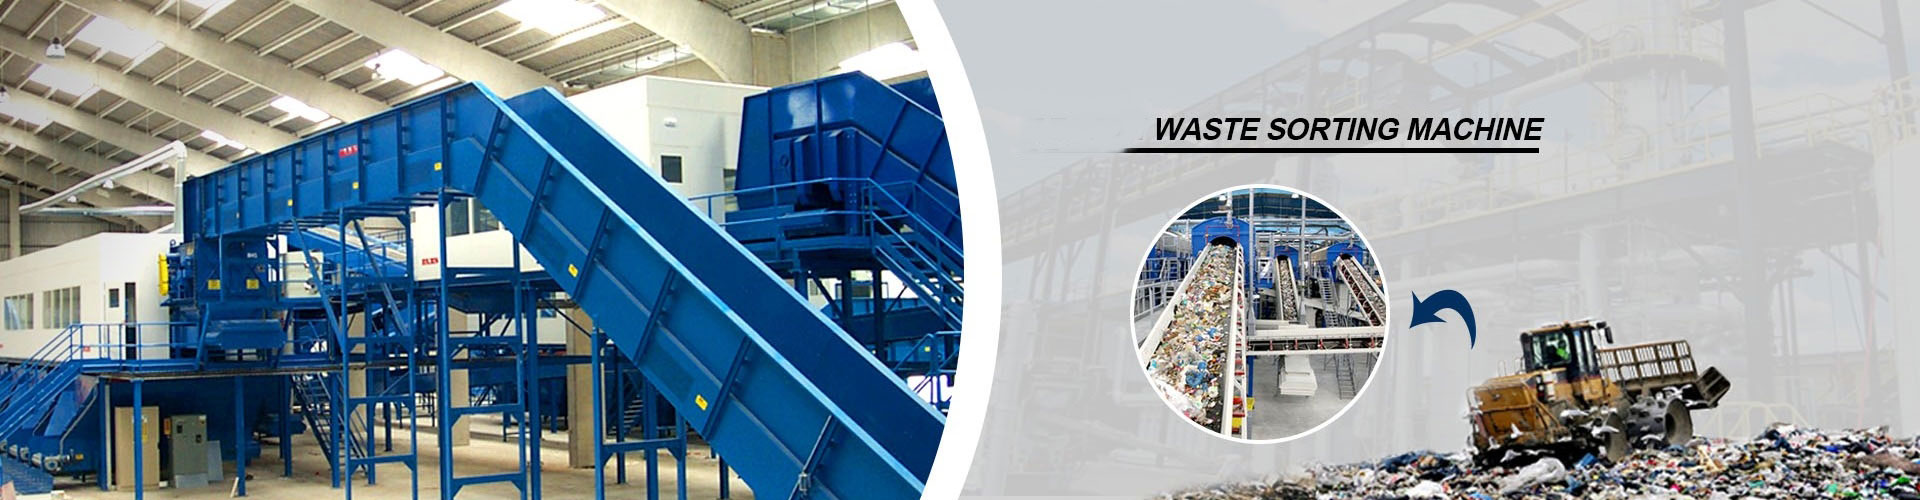 Kingtiger waste sorting plant